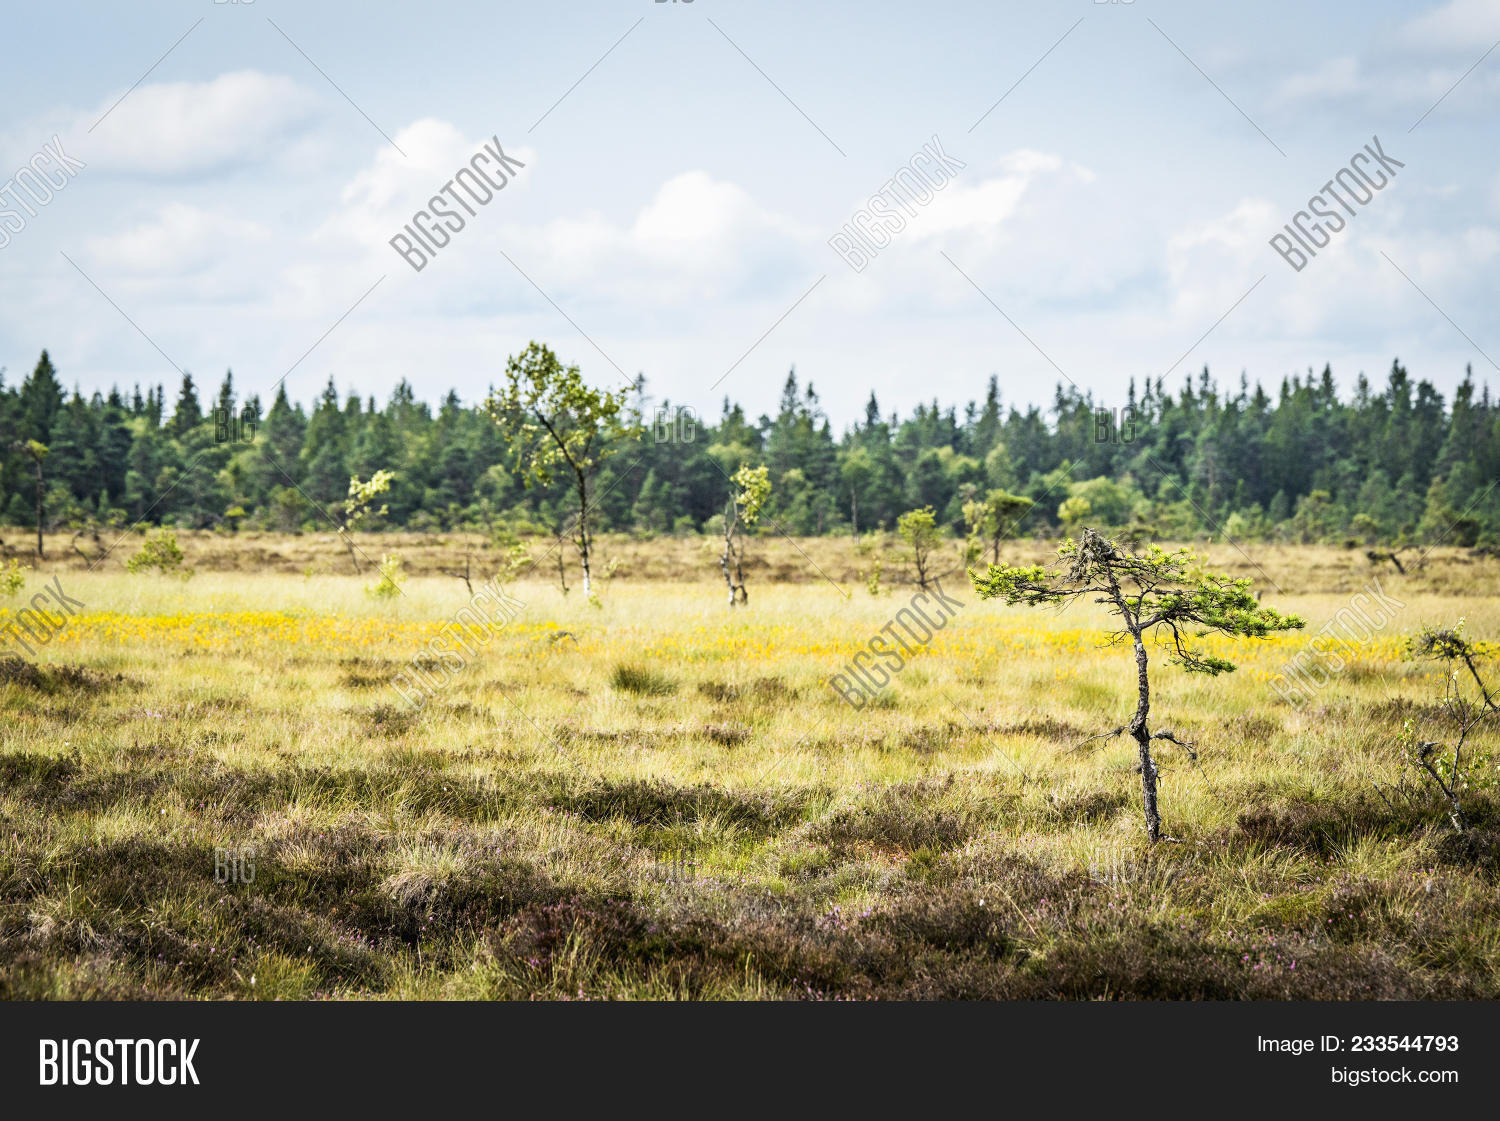 Small Pine Trees On Image Photo Free Trial Bigstock